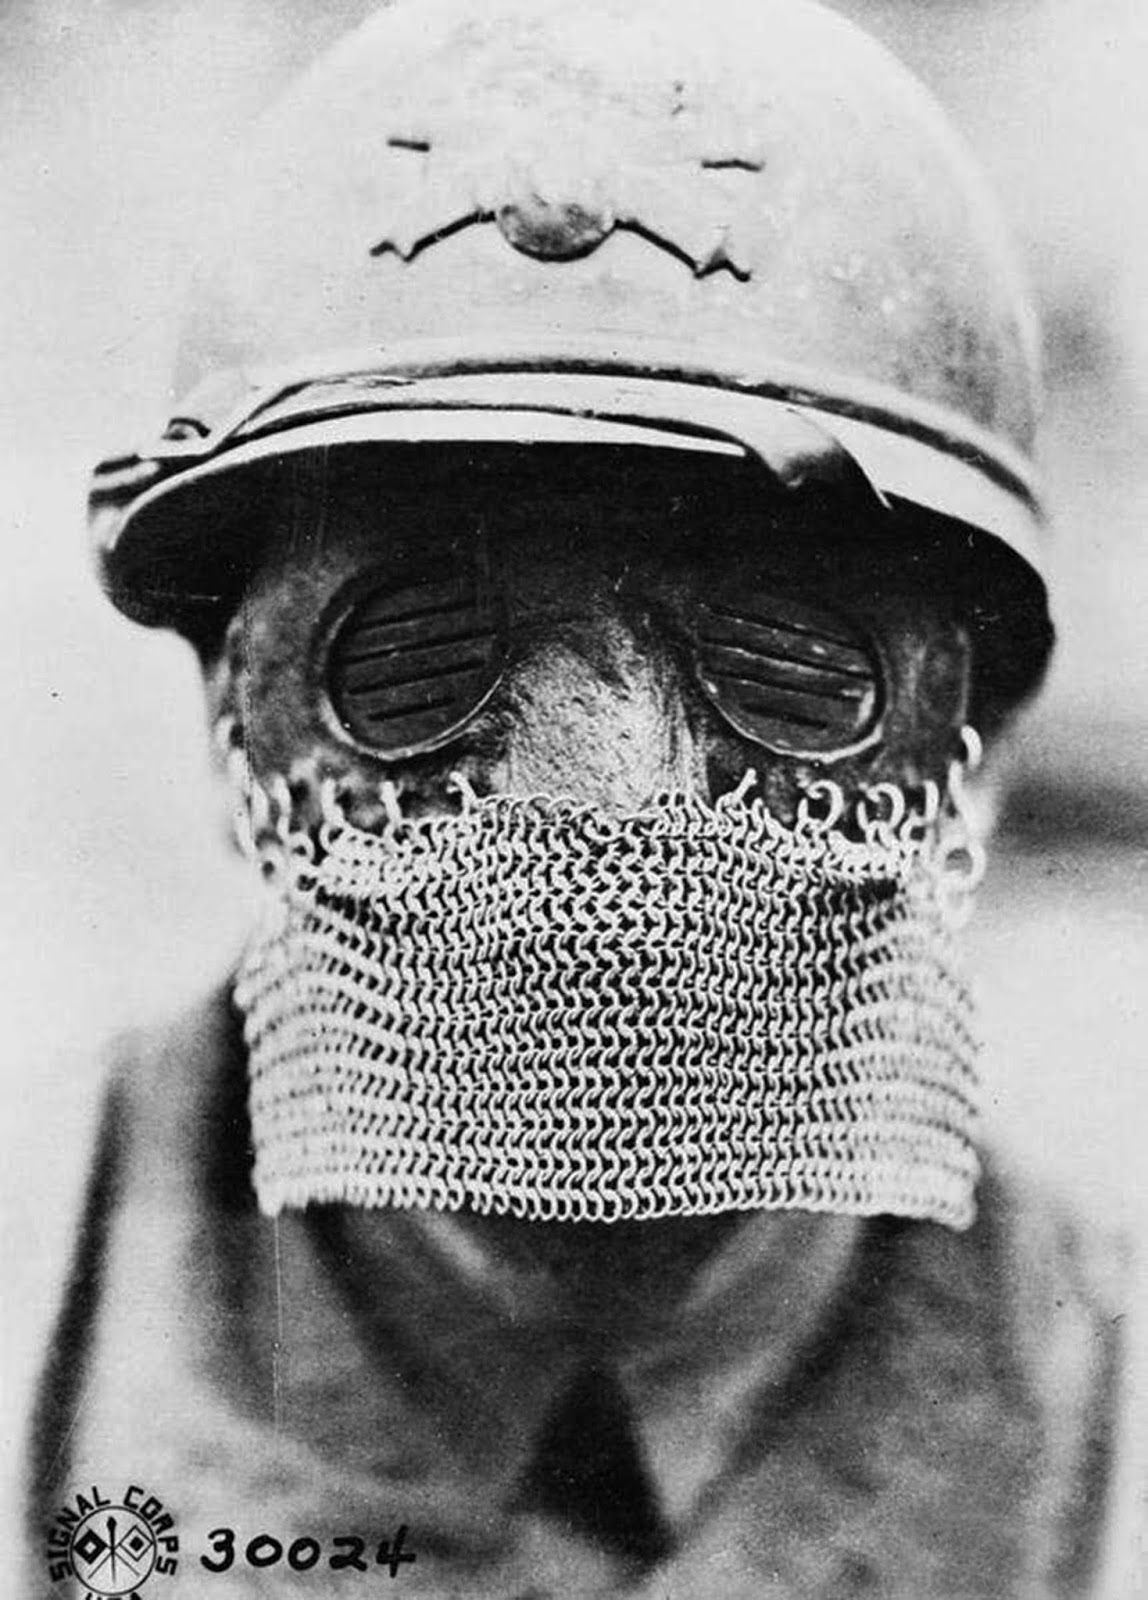 Splatter mask for tank crews, October 12, 1918.